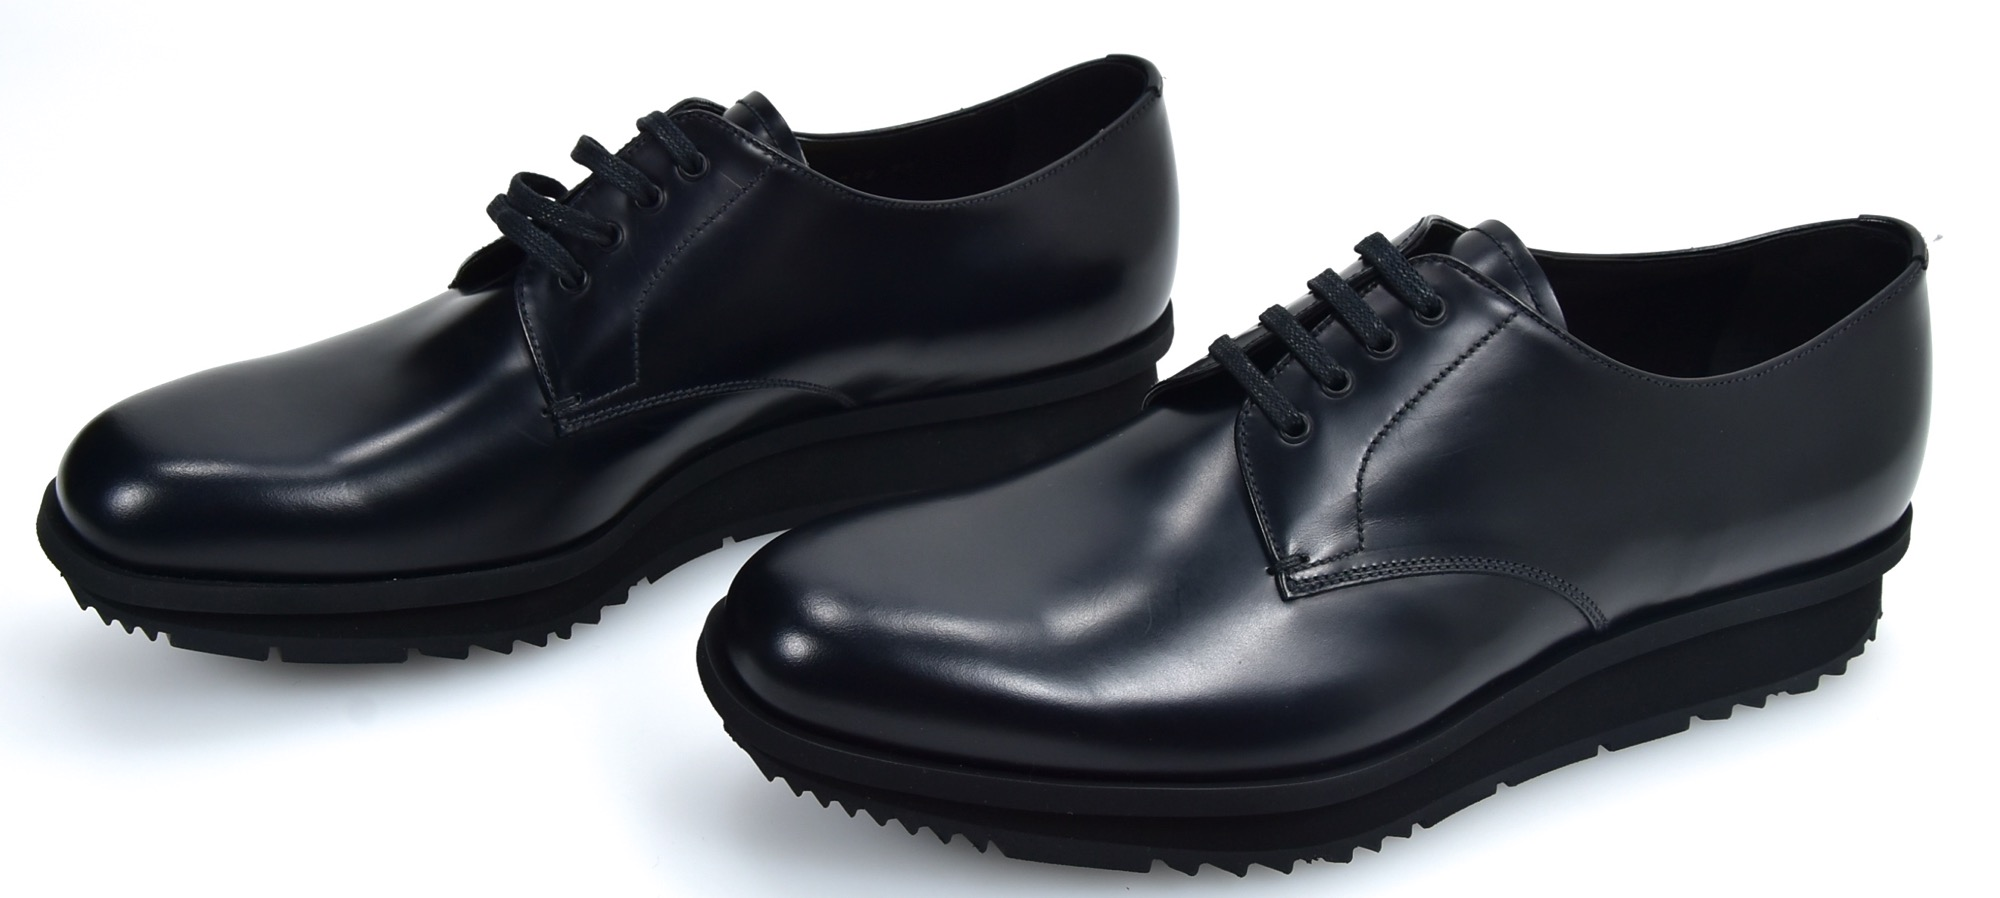 0f048b359725 Details about PRADA MAN BUSINESS DERBY CLASSIC FORMAL DRESS SHOES LEATHER  CODE 2EE092